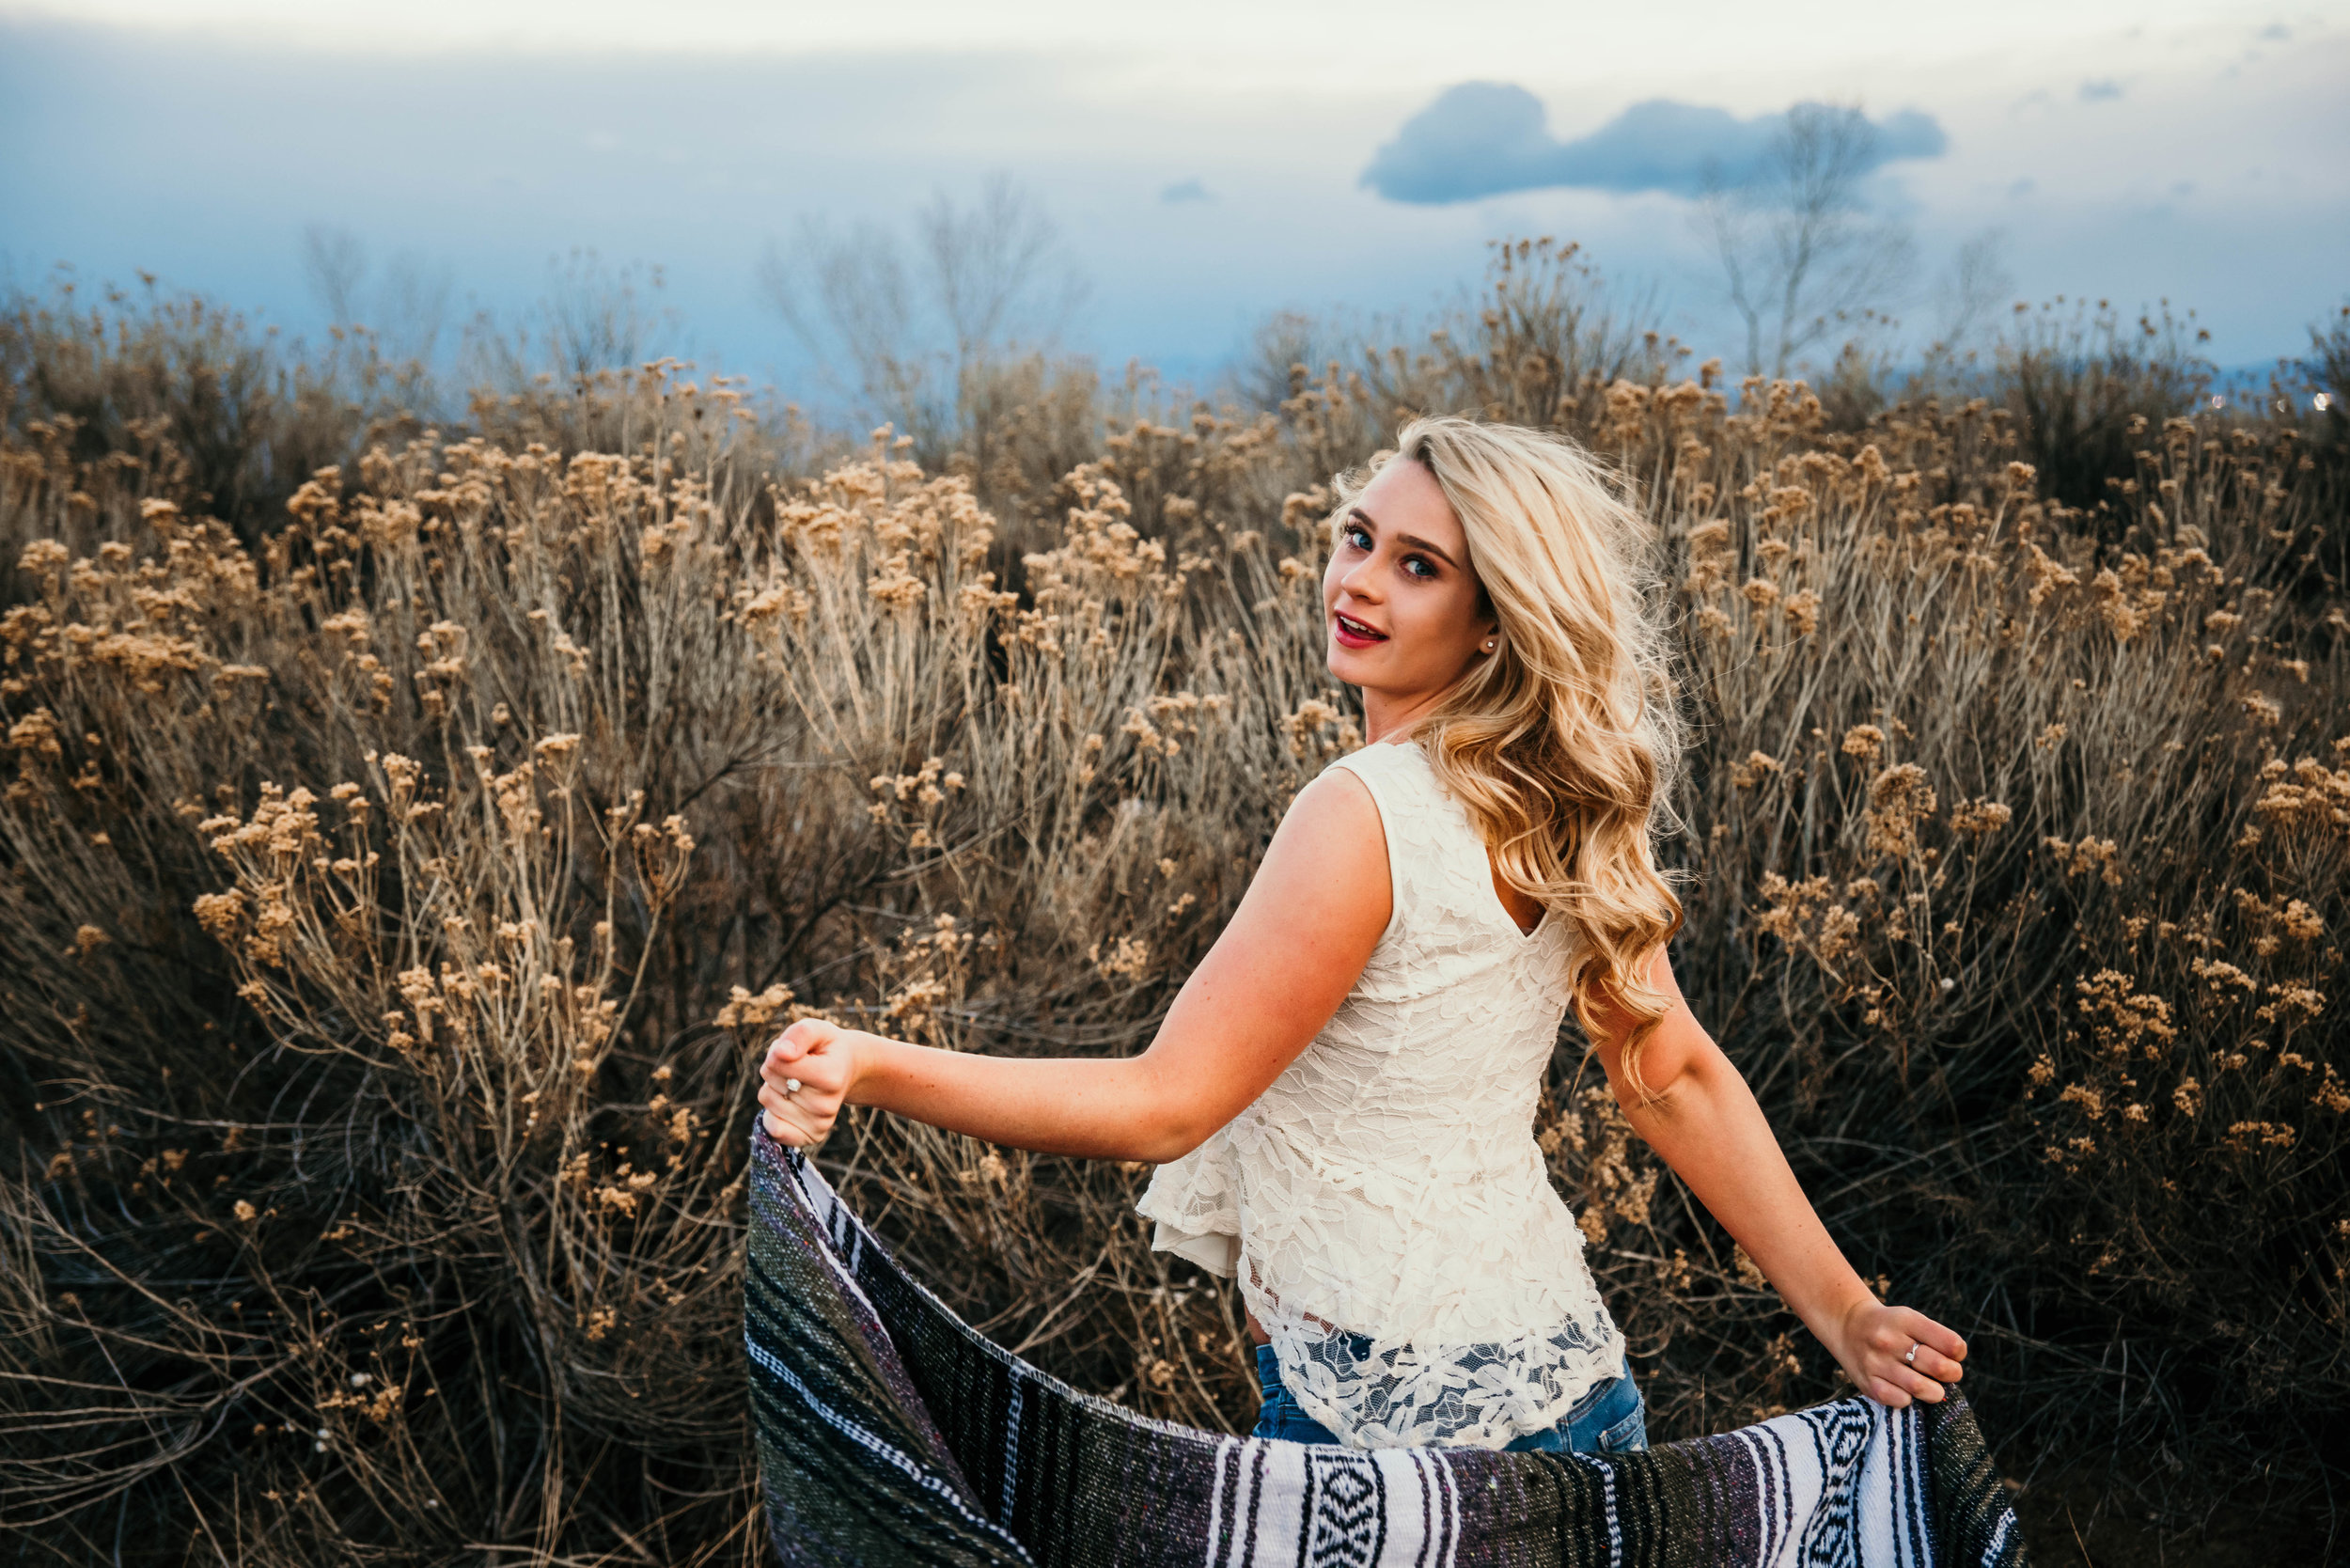 Miss. Miller's Photography | Senior Photo inspo | Colorado senior | Colorado girl | Colorado senior photographer | southwestern blanket in photos | photo shoot with blanket | blonde hair ideas